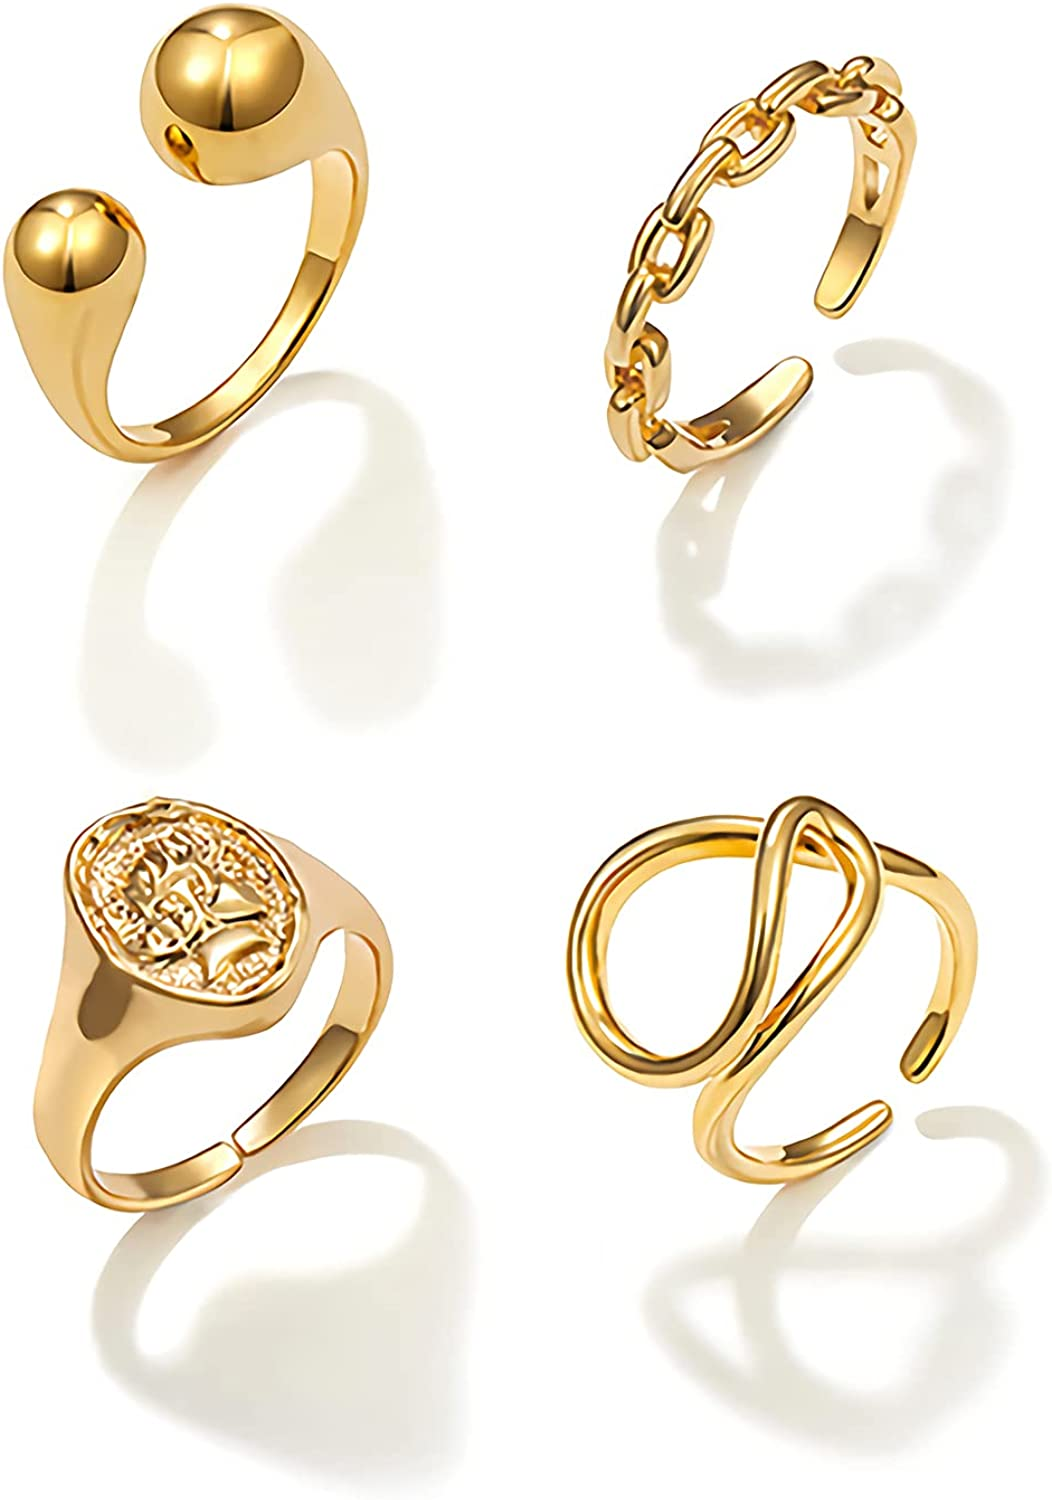 Sloong 4 Daily bargain sale Pcs New popularity Chunky Chain Rings Set Plated Open Ring Gold Ri 14k